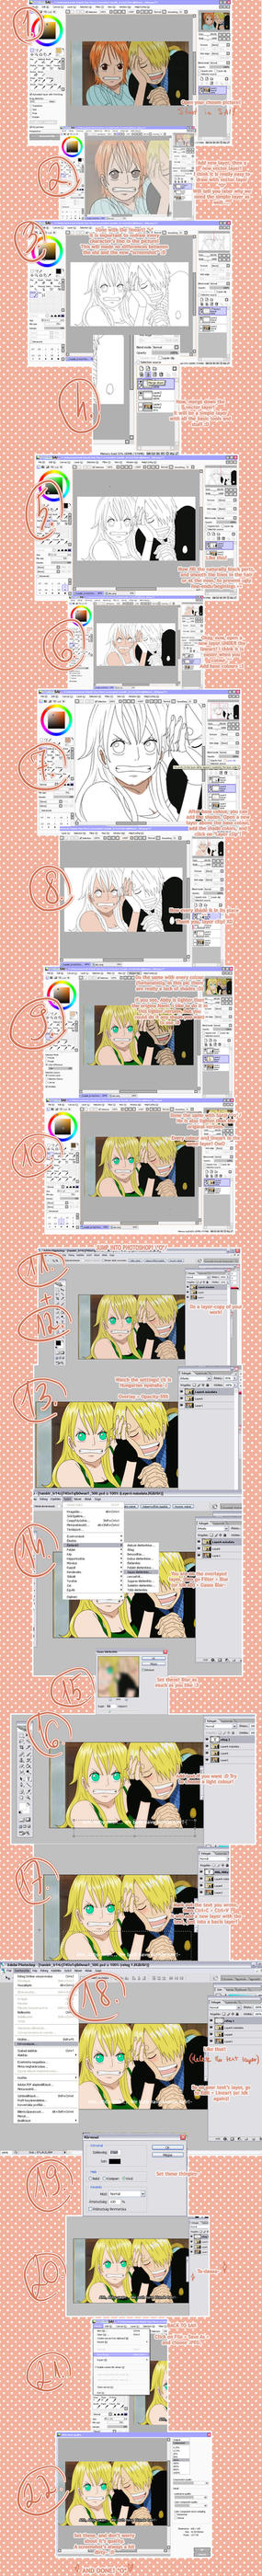 FAKE SCREENSHOT TUTORIAL hurrayyyy let's see--- by tutti-fruppy